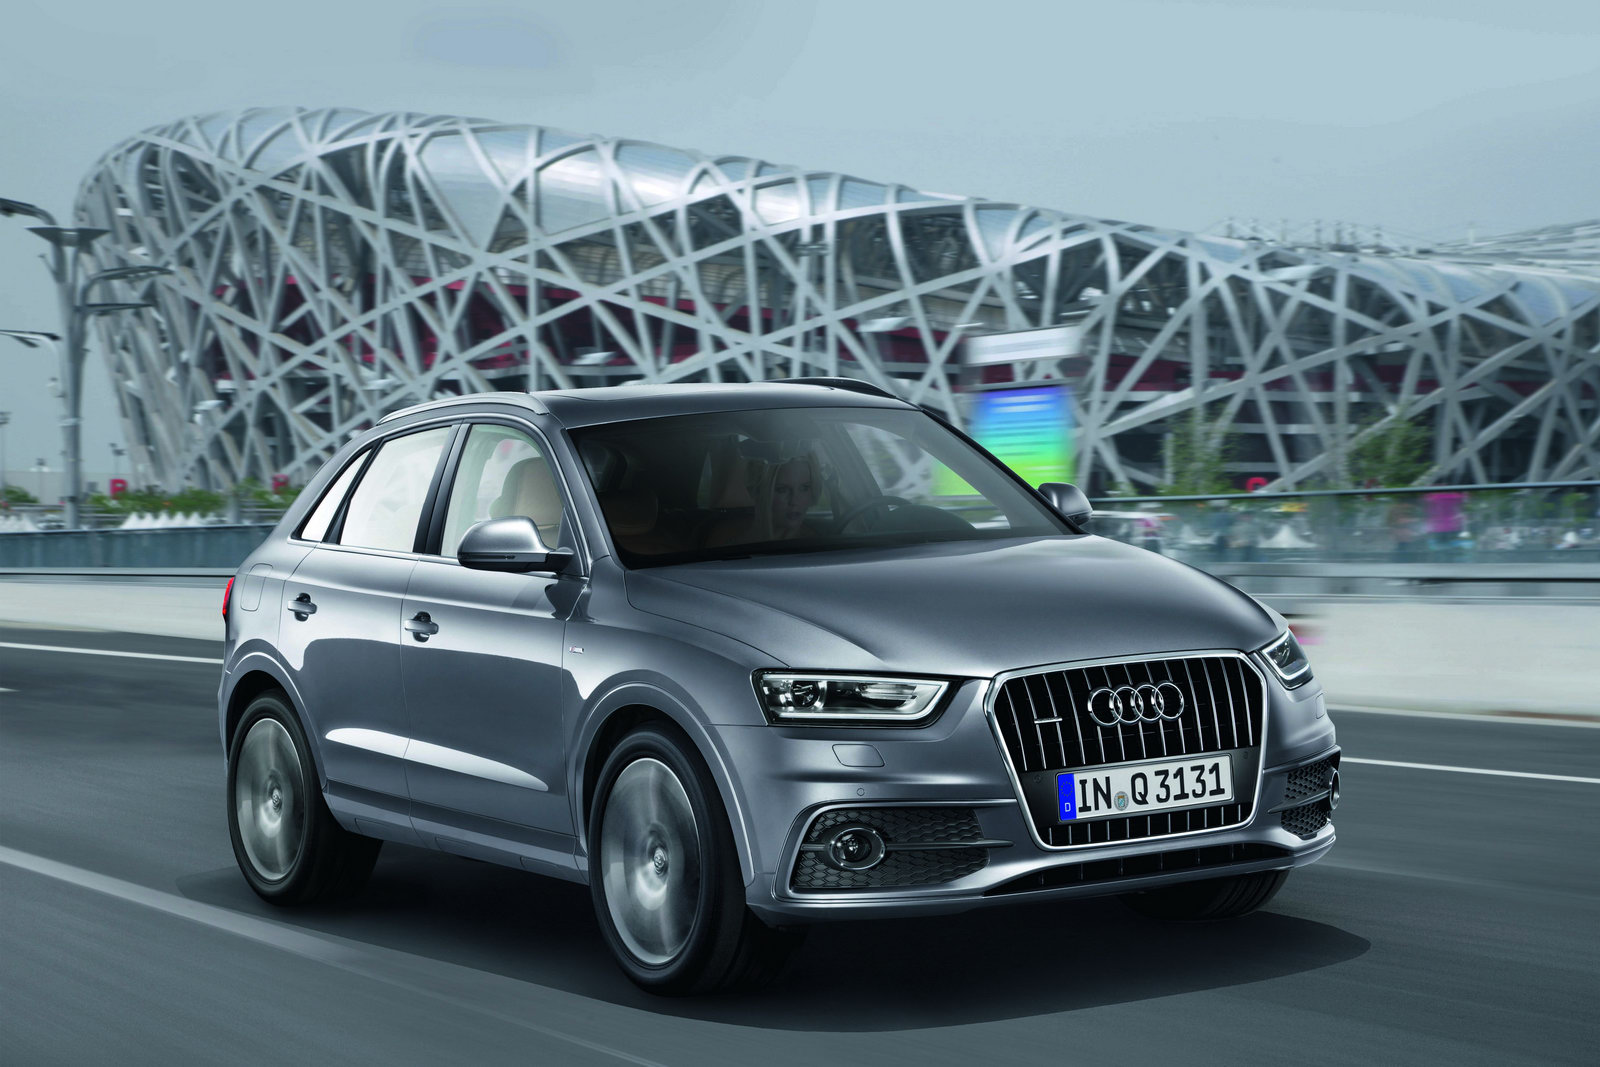 Car Review Audi Q Hybrid EZeLiving - Audi q3 hybrid